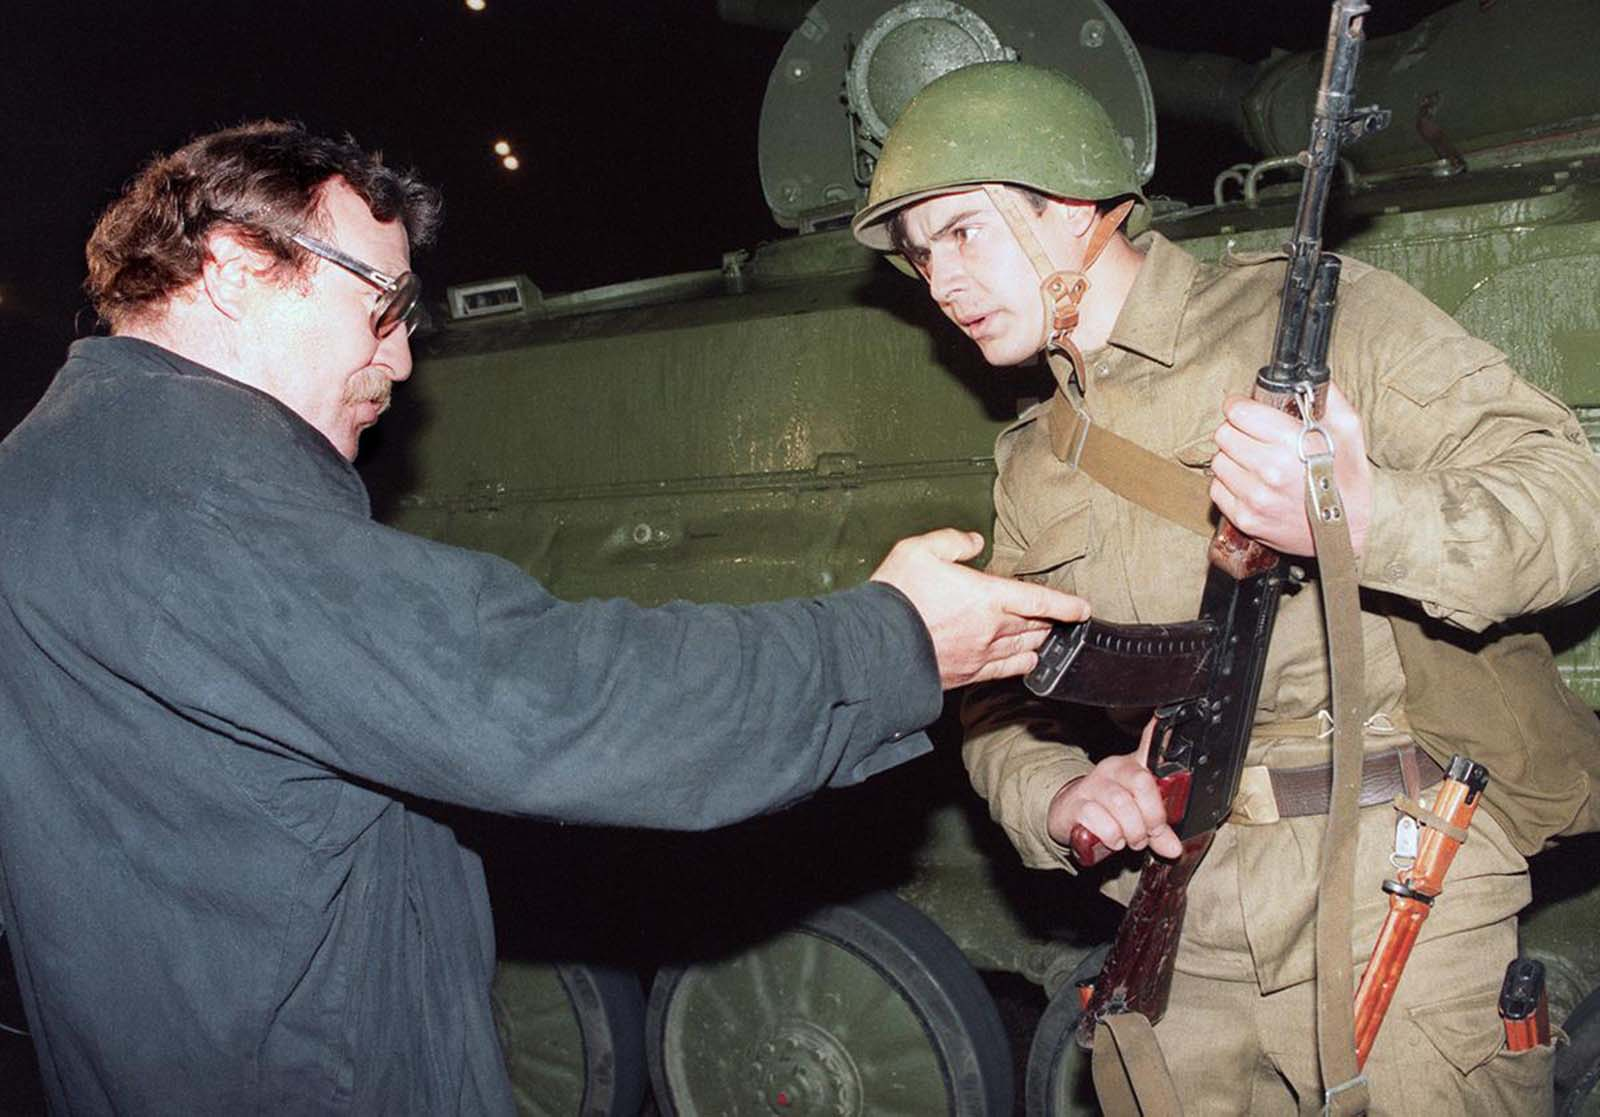 A pro-democracy demonstrator argues with a Soviet soldier late on August 20, 1991, as a tank blocked access to the center of Moscow.